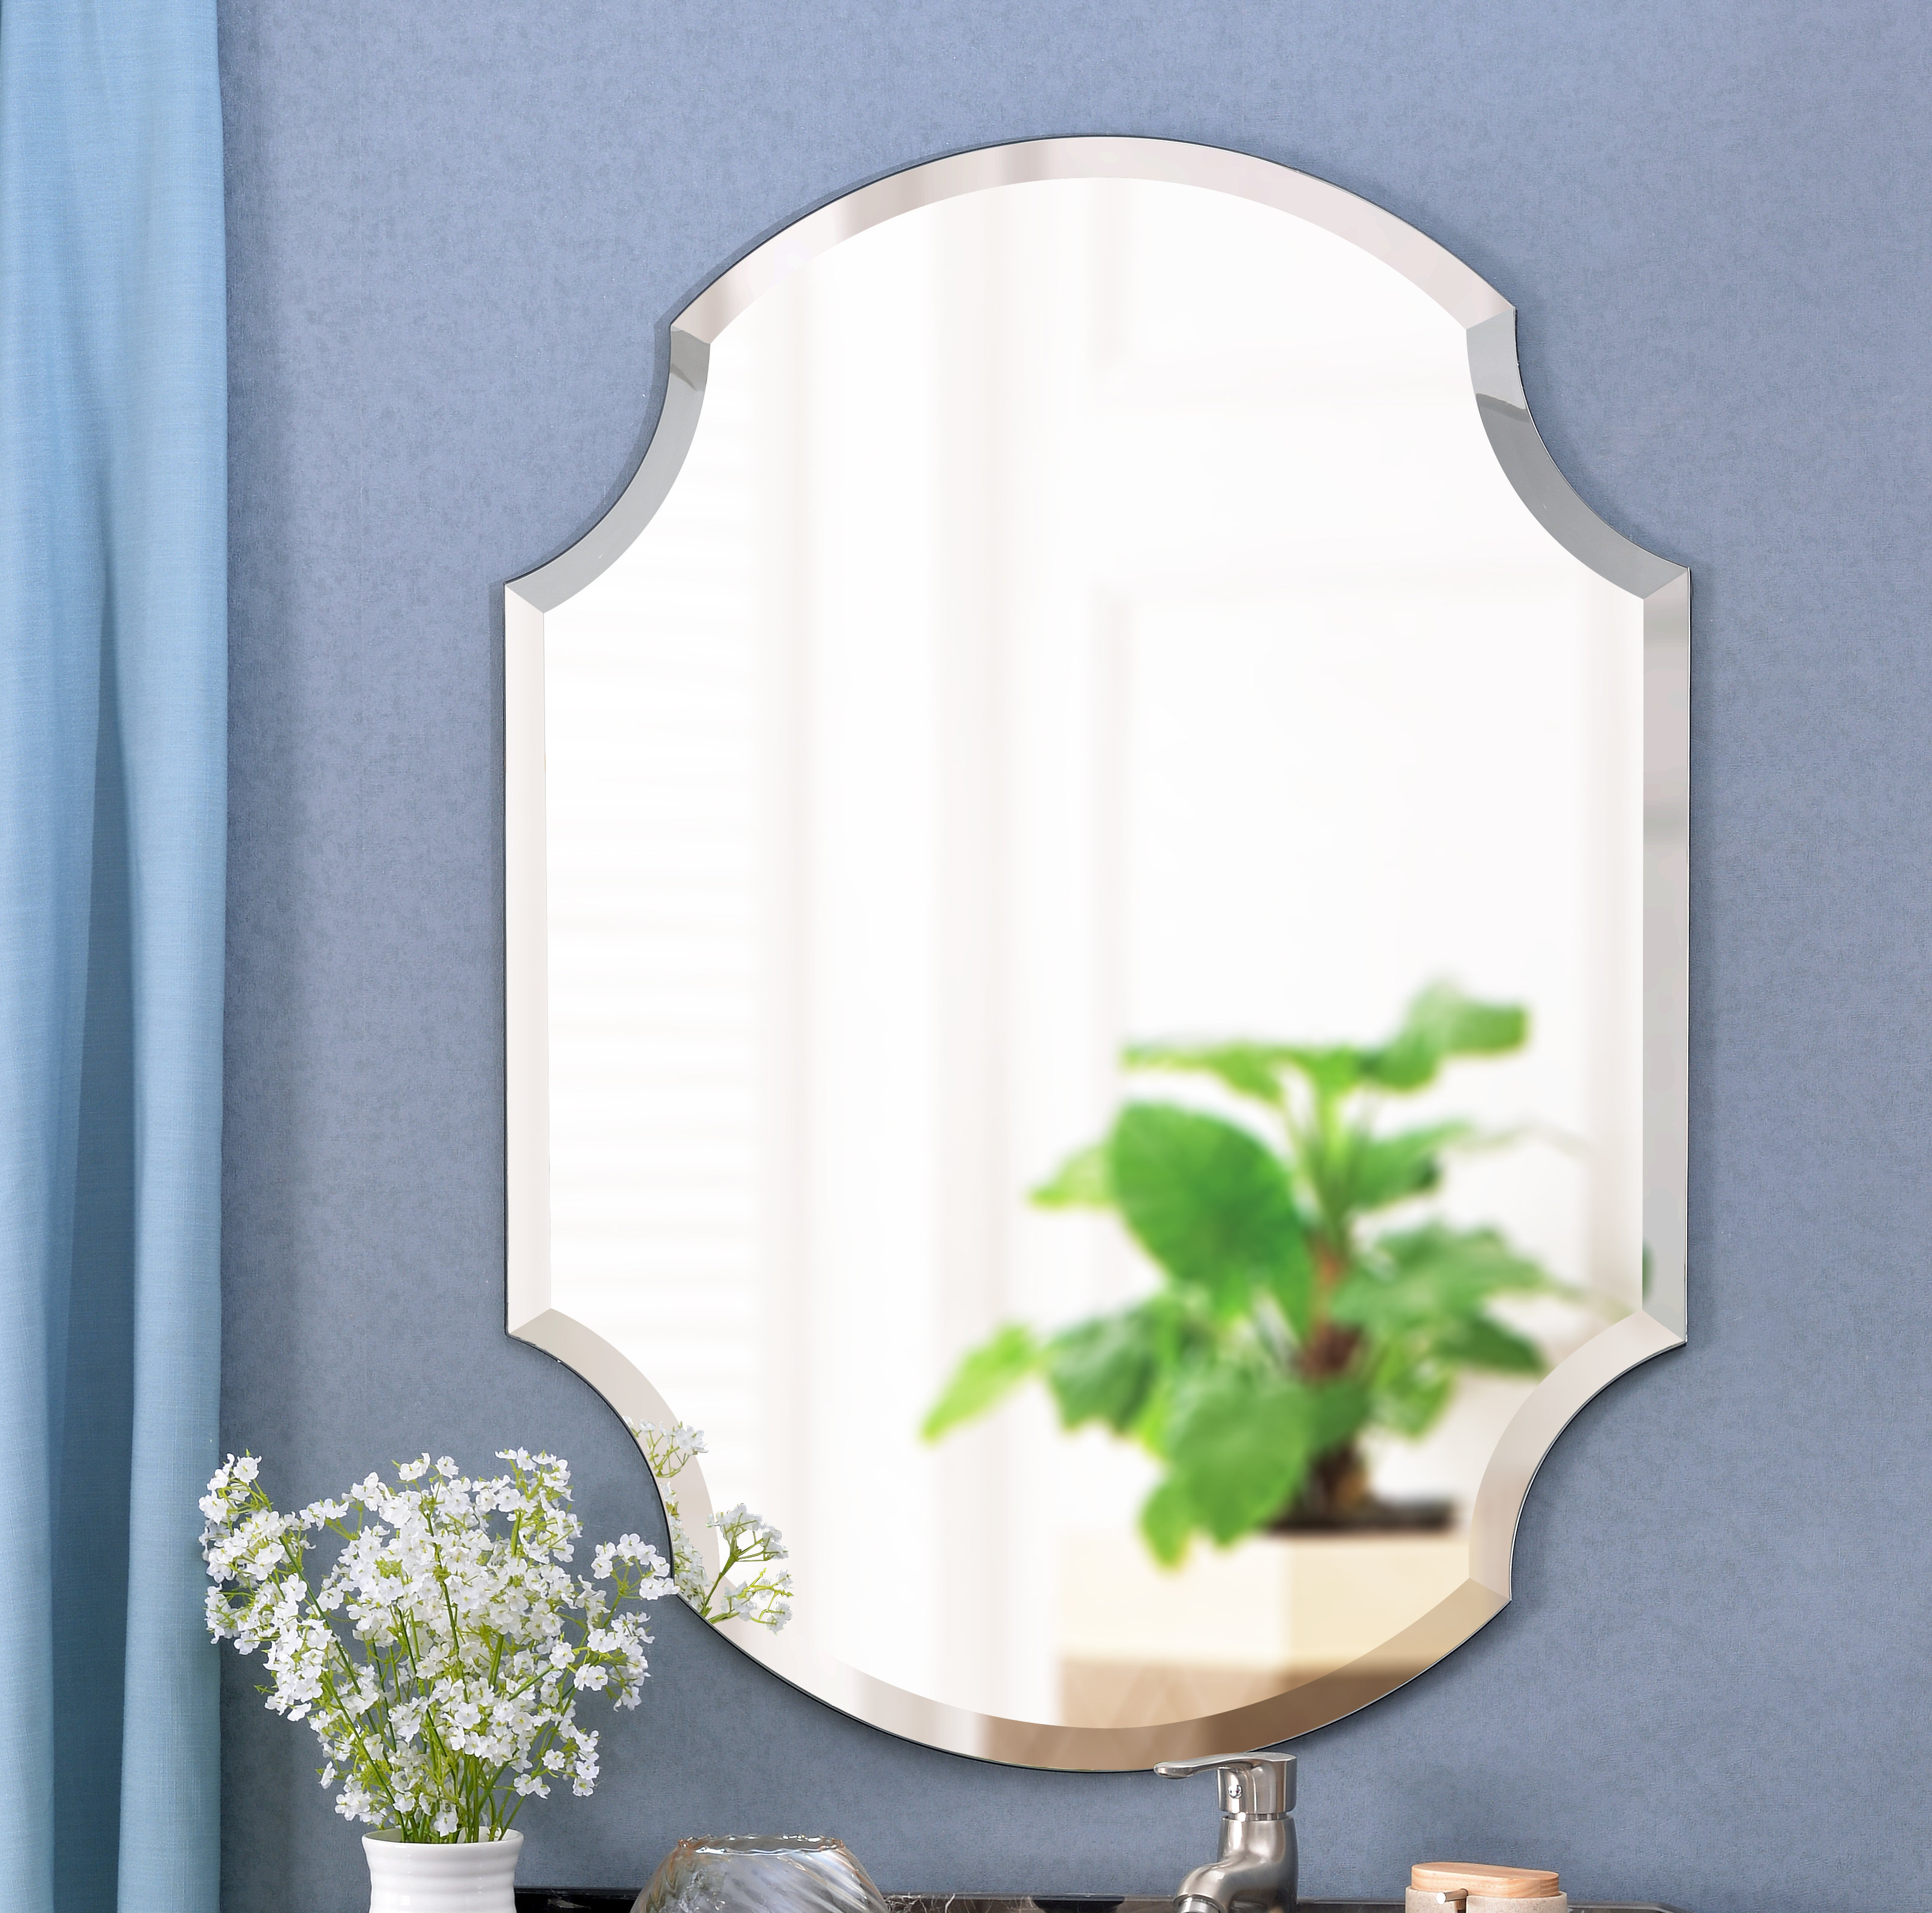 Mcclure Accent Mirror intended for Dariel Tall Arched Scalloped Wall Mirrors (Image 16 of 30)